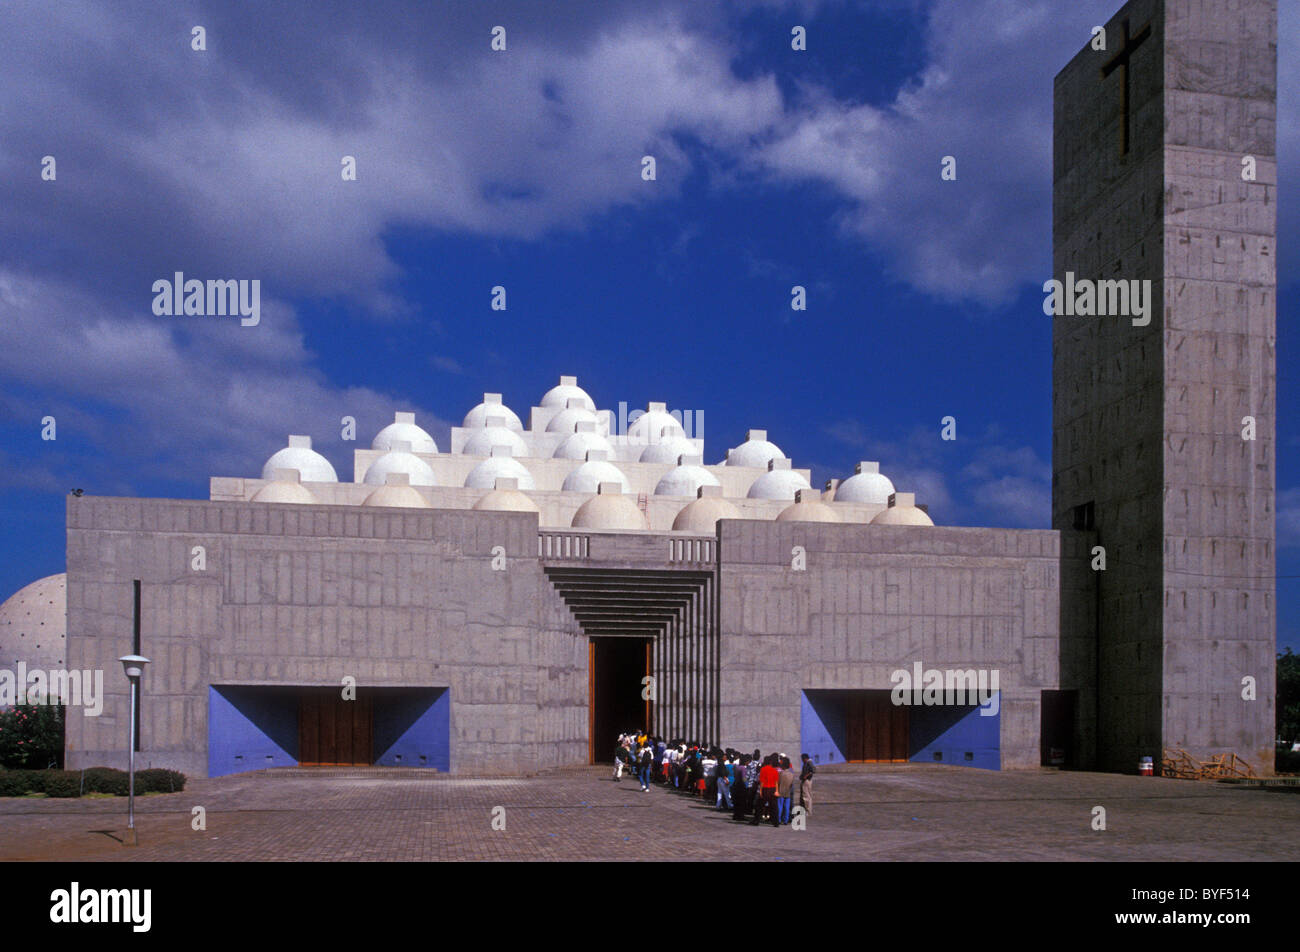 School children lined up in front of the new cathedral or Catedral de la Inmaculada Concepcion de Maria in Managua, Stock Photo